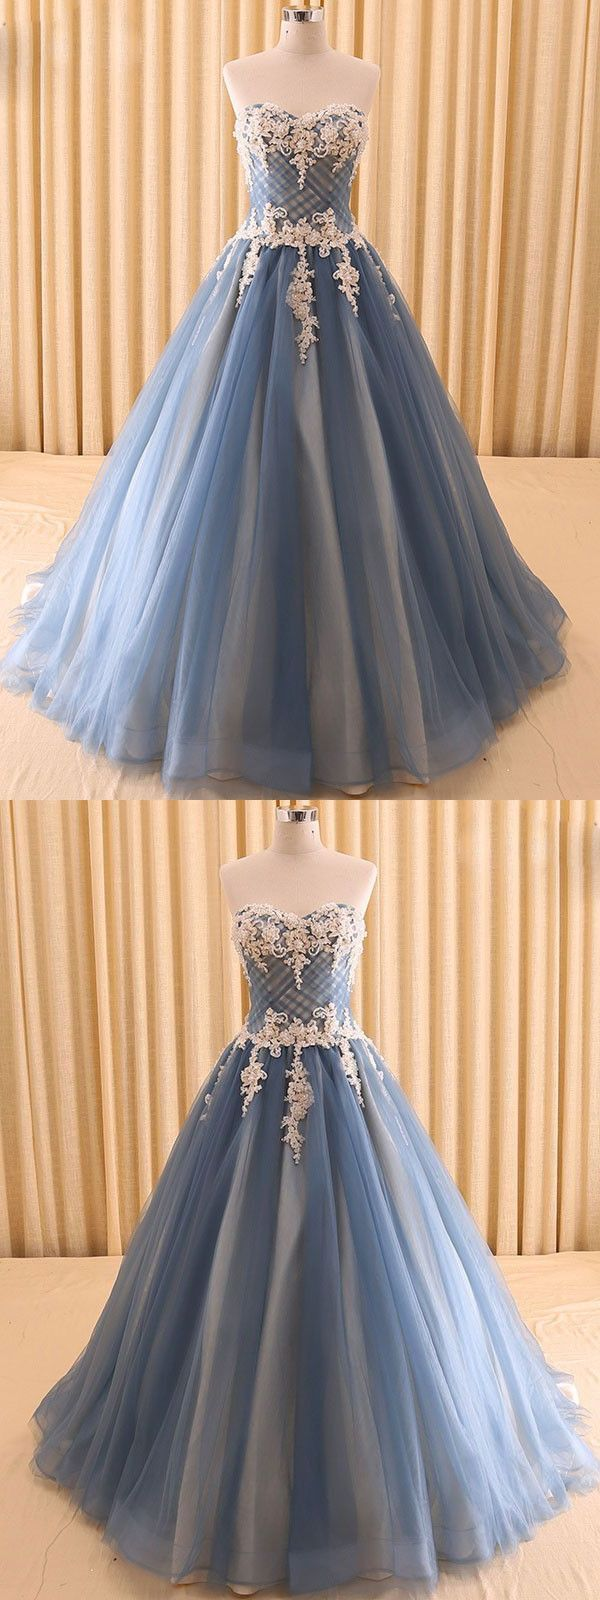 prom dresses long,prom dresses for teens,prom dresses cheap,junior prom dresses,beautiful prom dresses,prom dresses flowy,prom dresses 2018,gorgeous prom dresses,prom dresses 2017,prom dresses unique,prom dresses elegant,prom dresses largos,prom dresses graduacion,prom dresses classy,prom dresses modest,prom dresses simple,prom dresses ball gown,prom dresses strapless,prom dresses lace #annapromdress #prom #promdress #evening #eveningdress #dance #longdress #longpromdress #fashion #style…